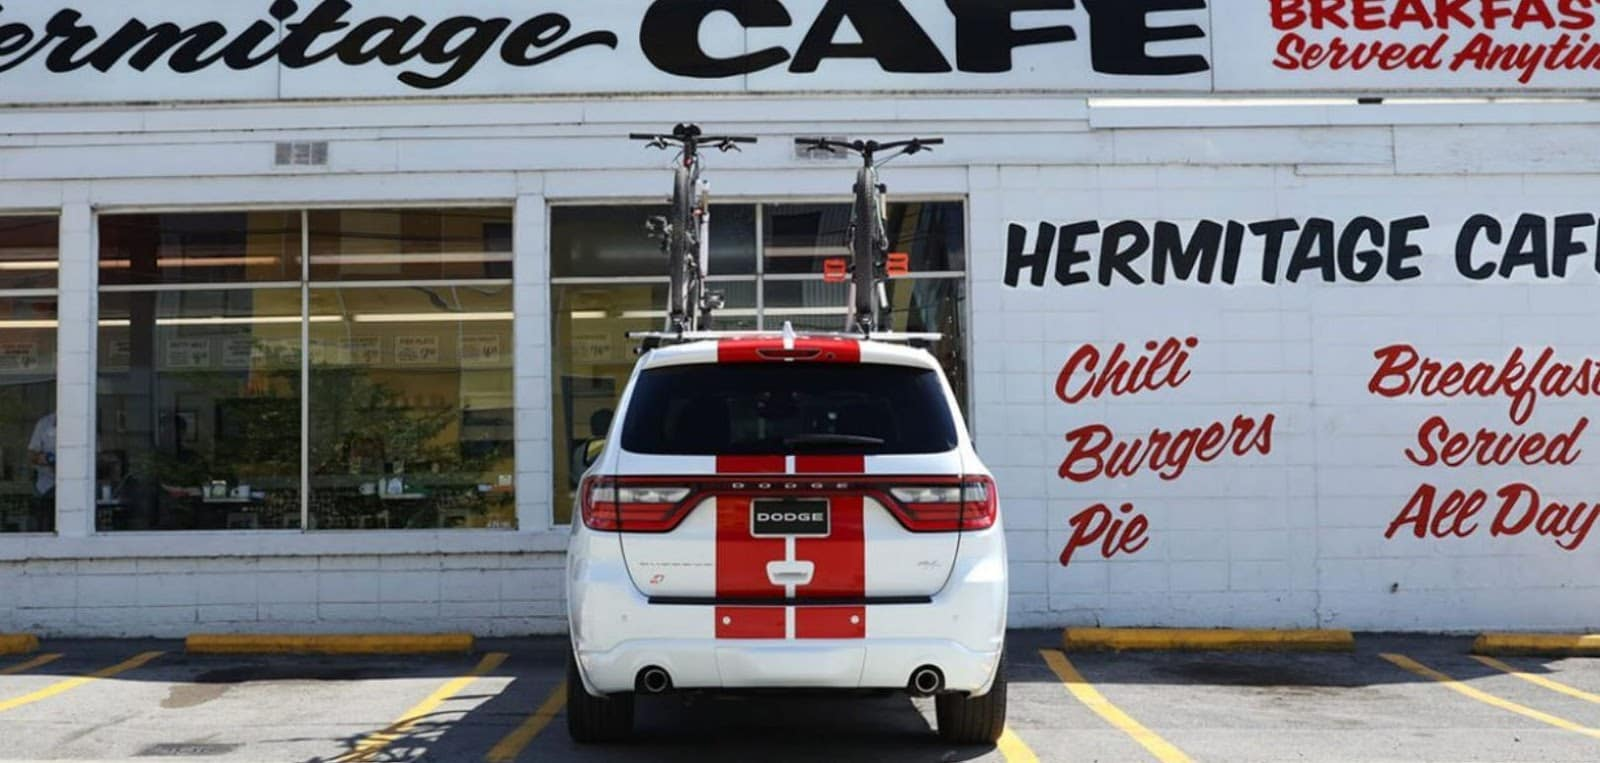 2019 dodge durango srt with red racing stripes hermitage cafe